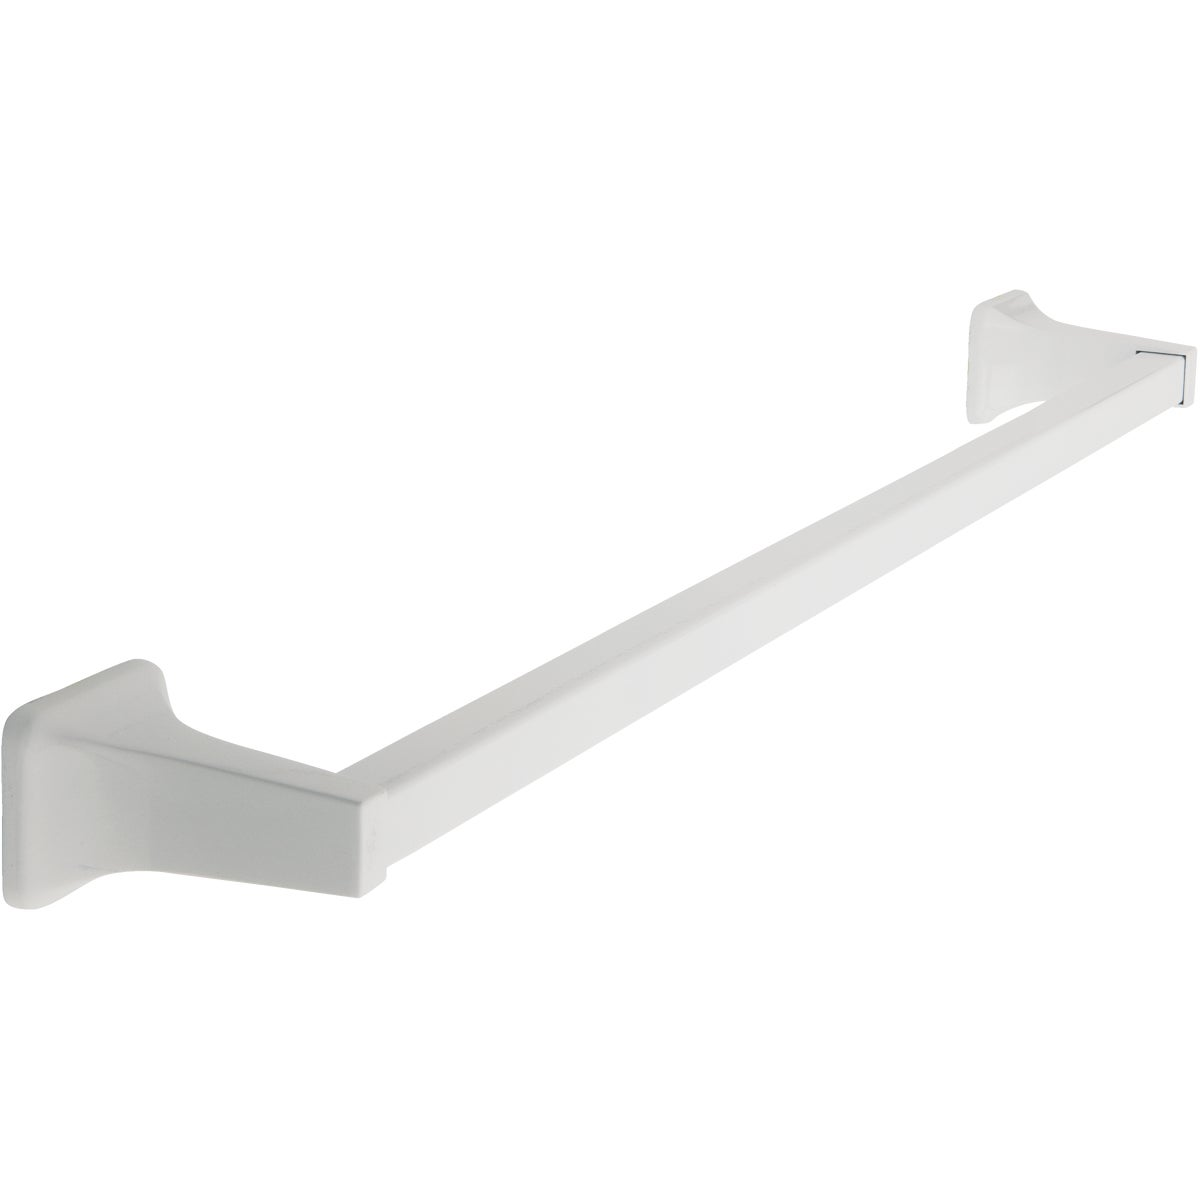 "24"" WHITE TOWEL BAR - 409739 by Do it Best"